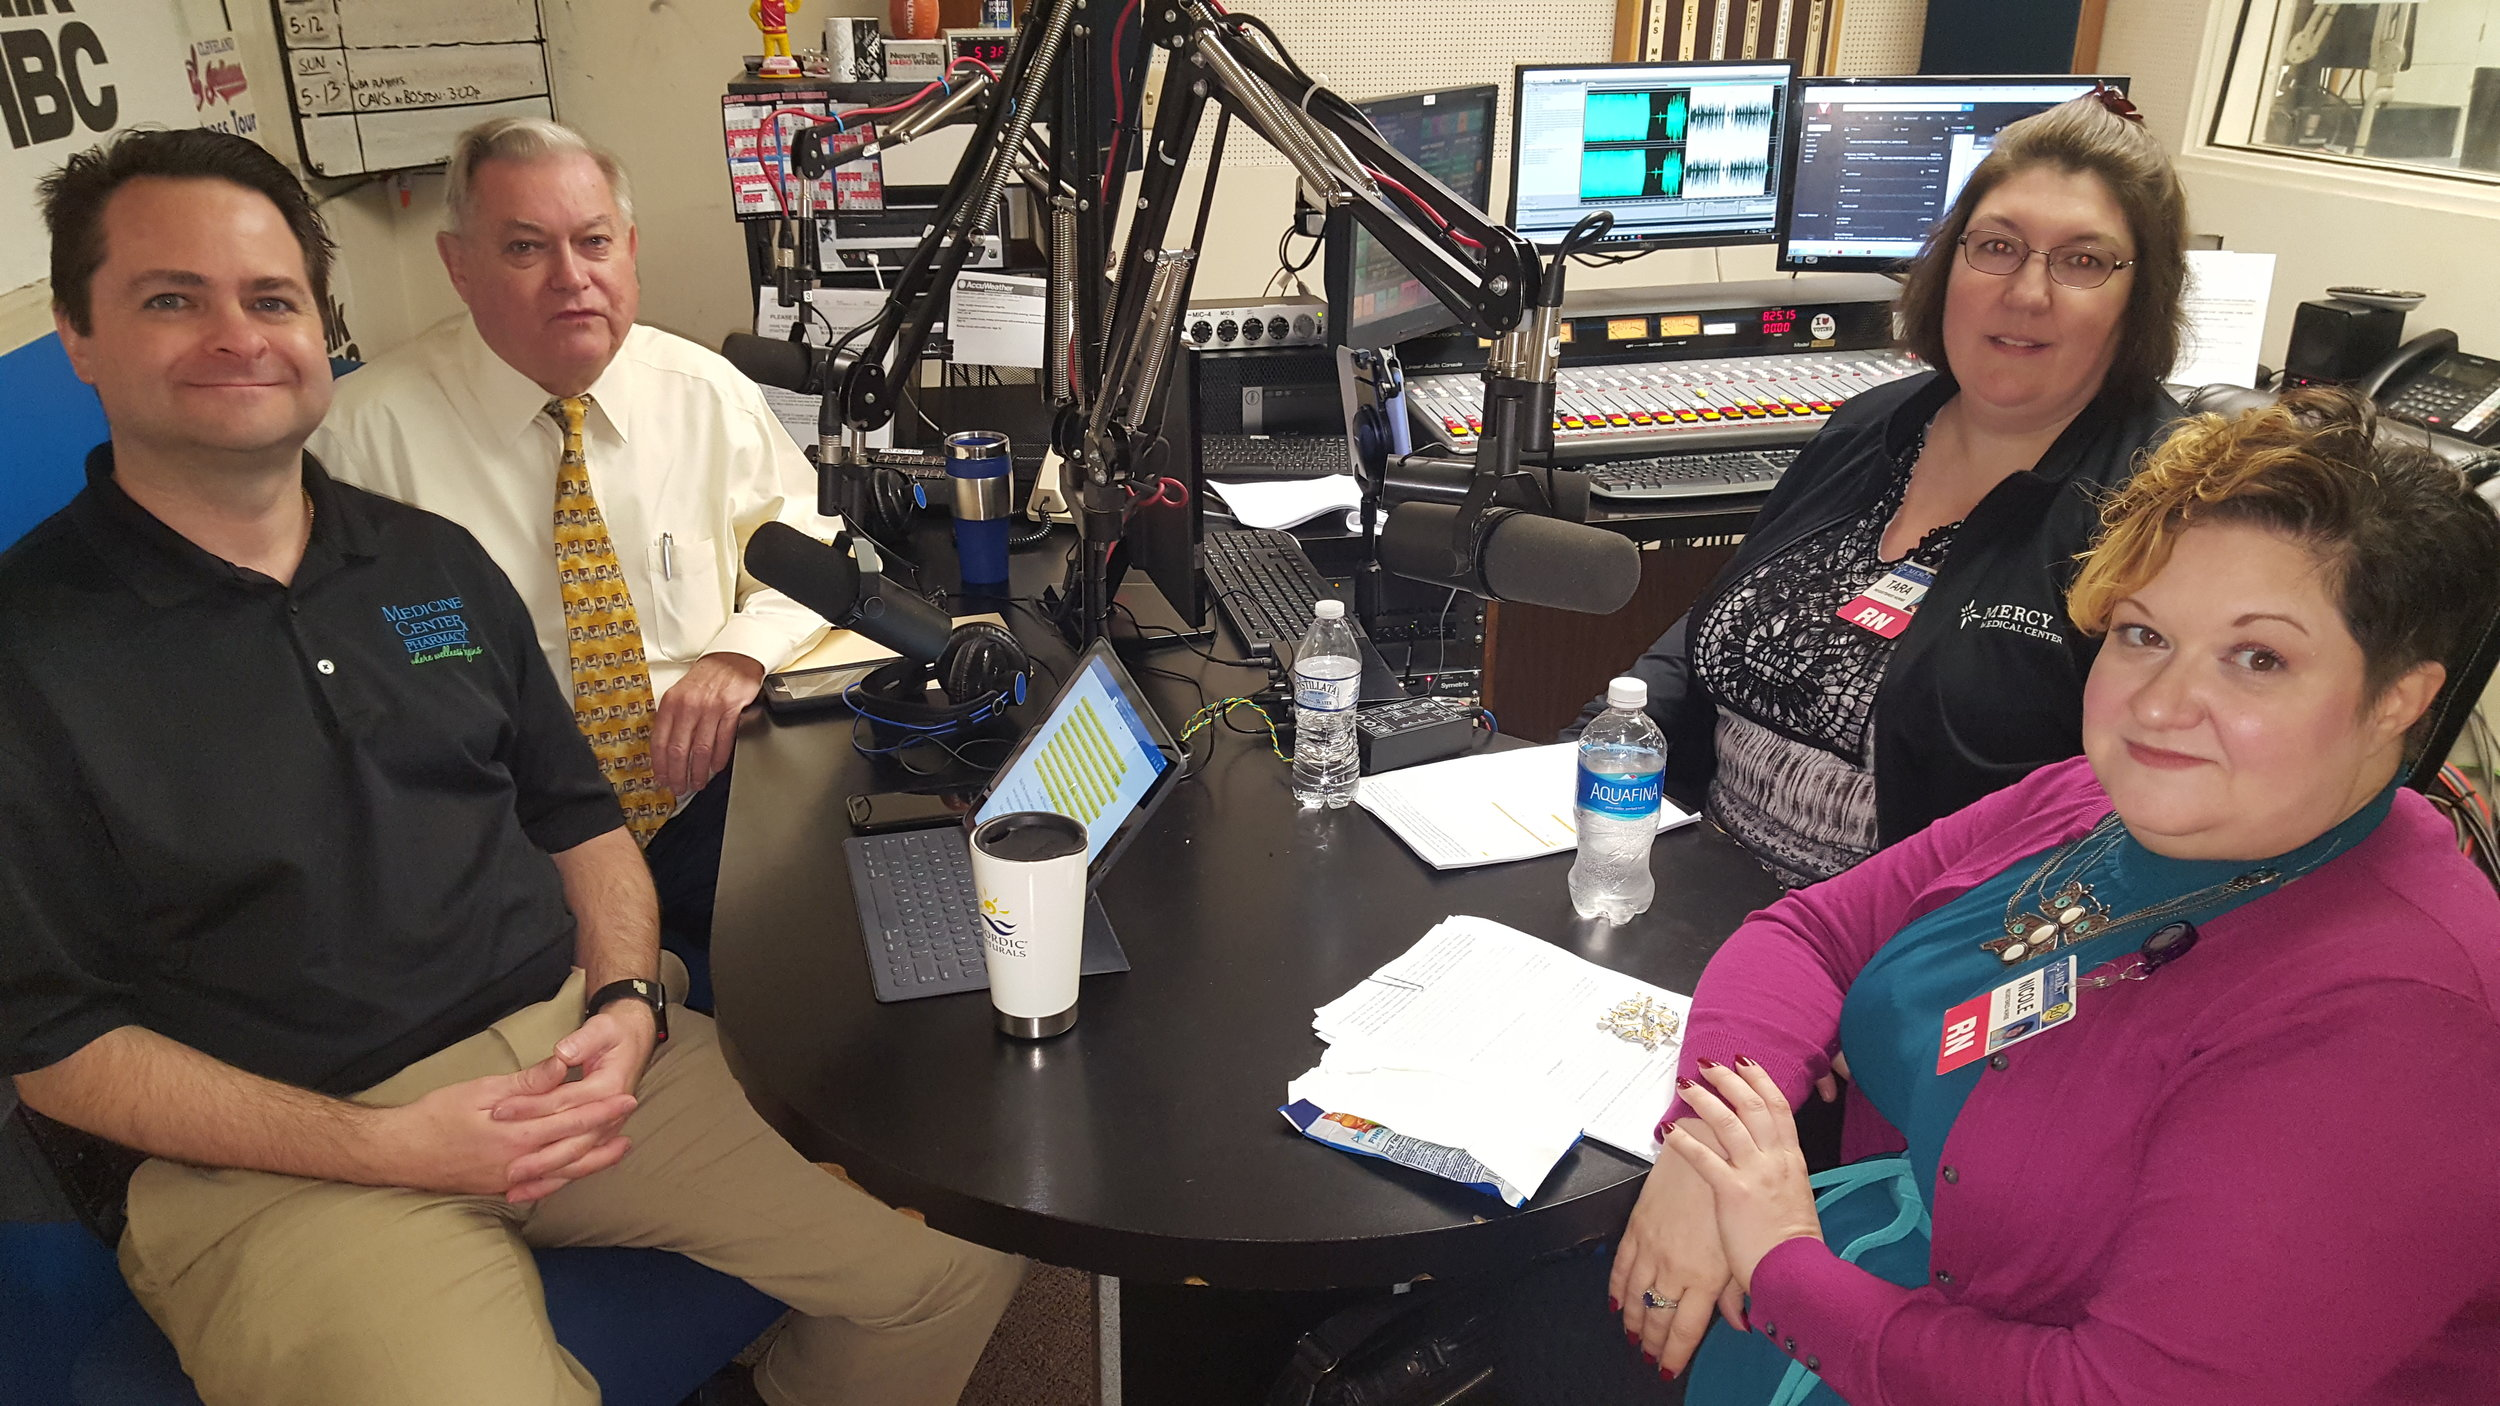 L-R: Brad and Paul White, hosts and pharmacists talk with nurse navigators, Tara Barker, RN, and Nicole Haines, RN, of Mercy Cancer Center.